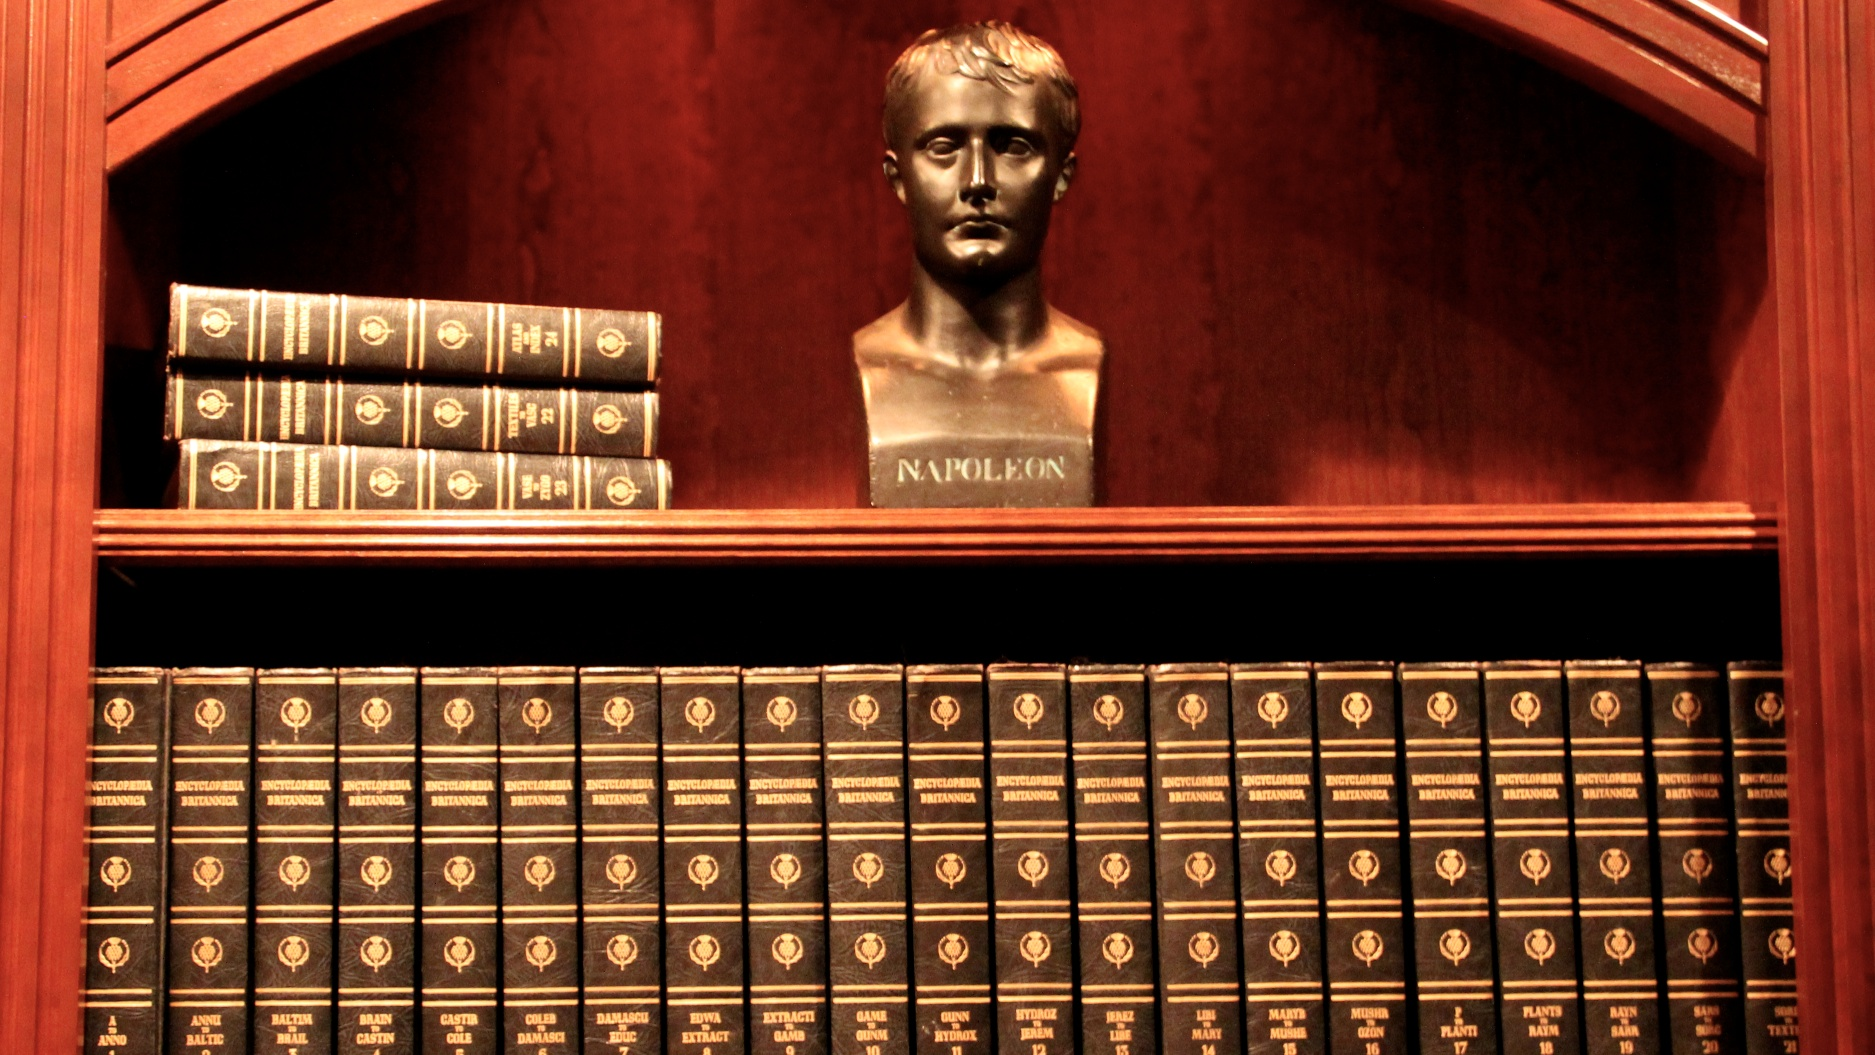 Encyclopaedia Britannica Goes Out of Print - TSM Interactive